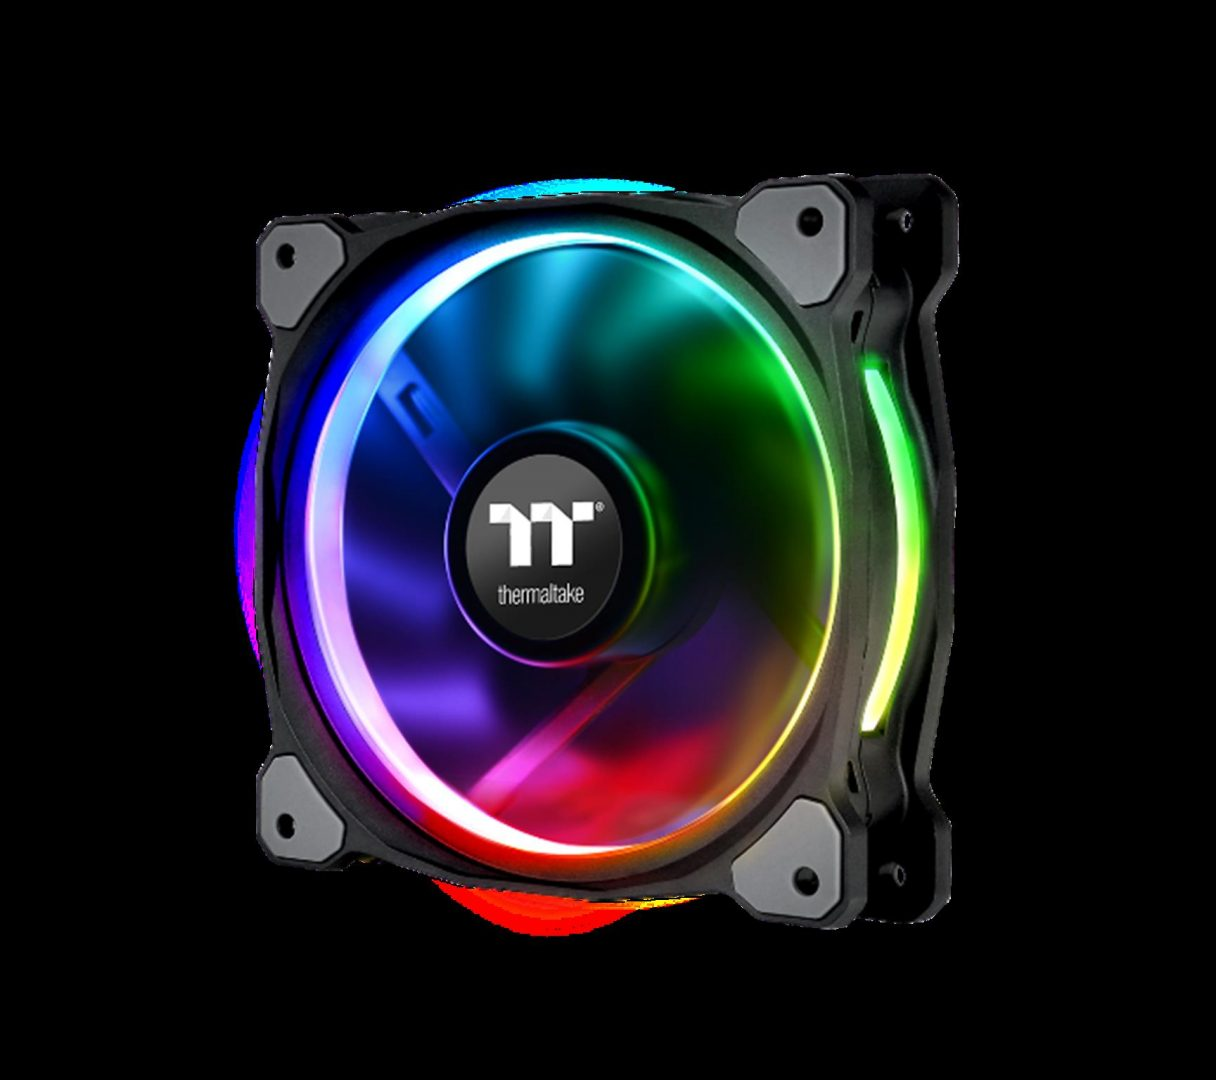 Thermaltake New Riing Plus 12 LED RGB Radiator Fan-Patented LED Design